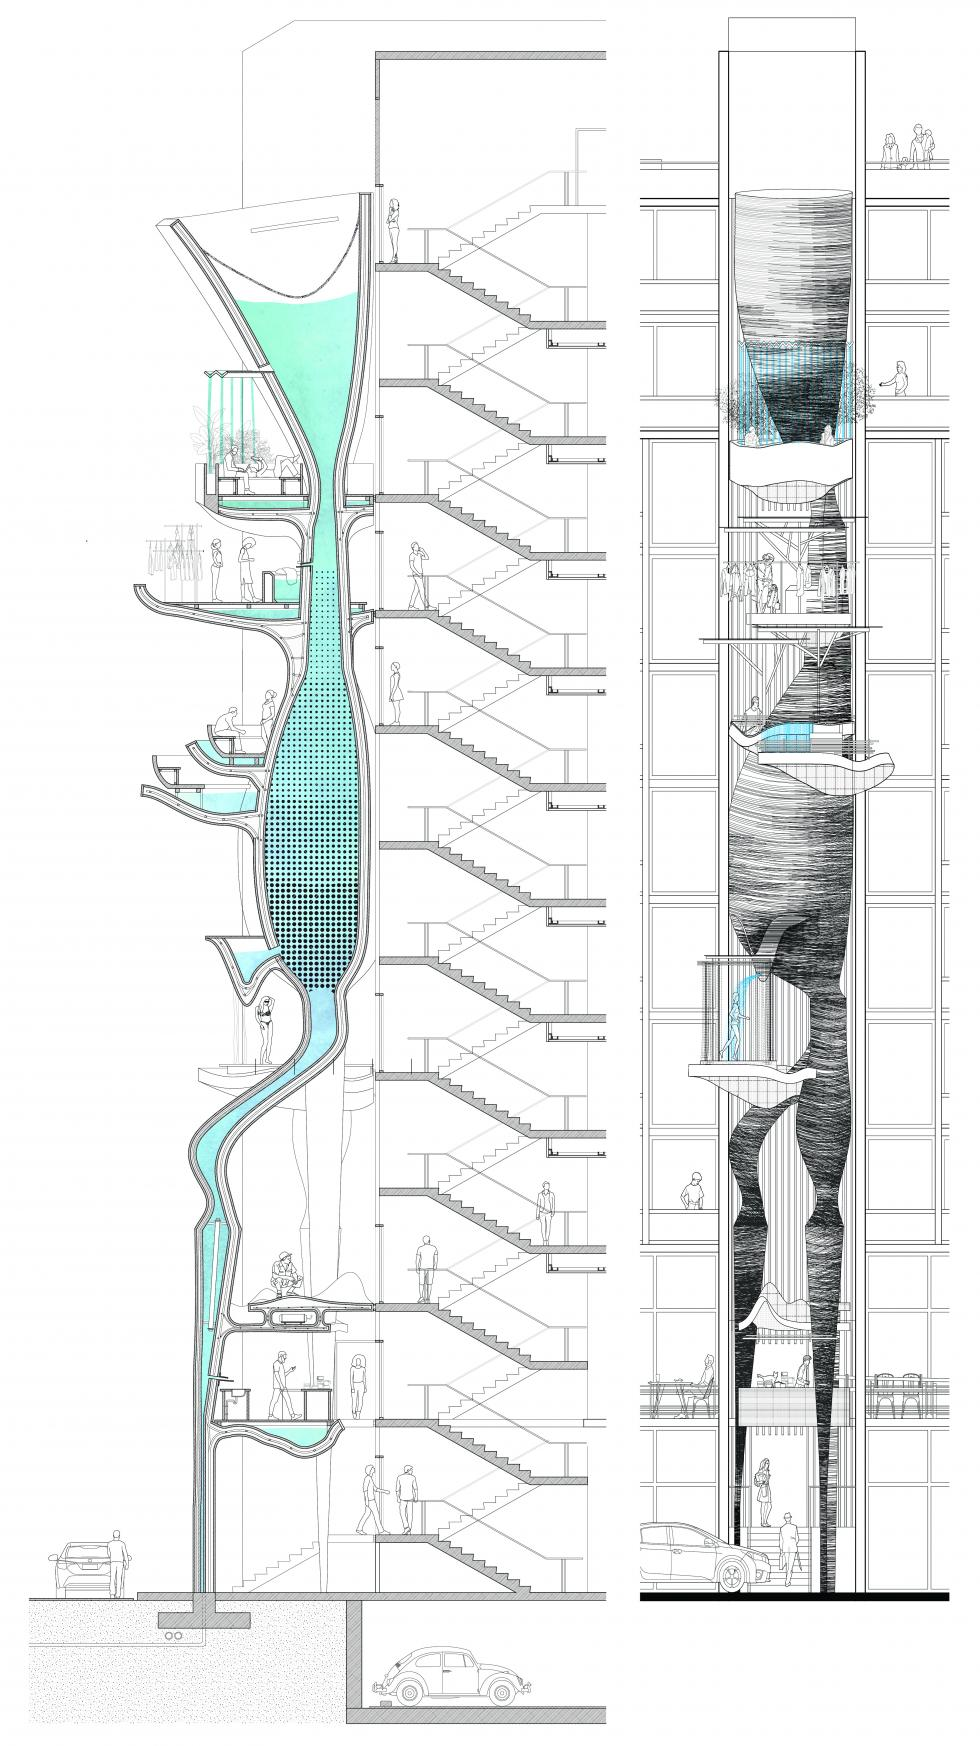 Section and elevation showing how water moves through all the levels of the building.